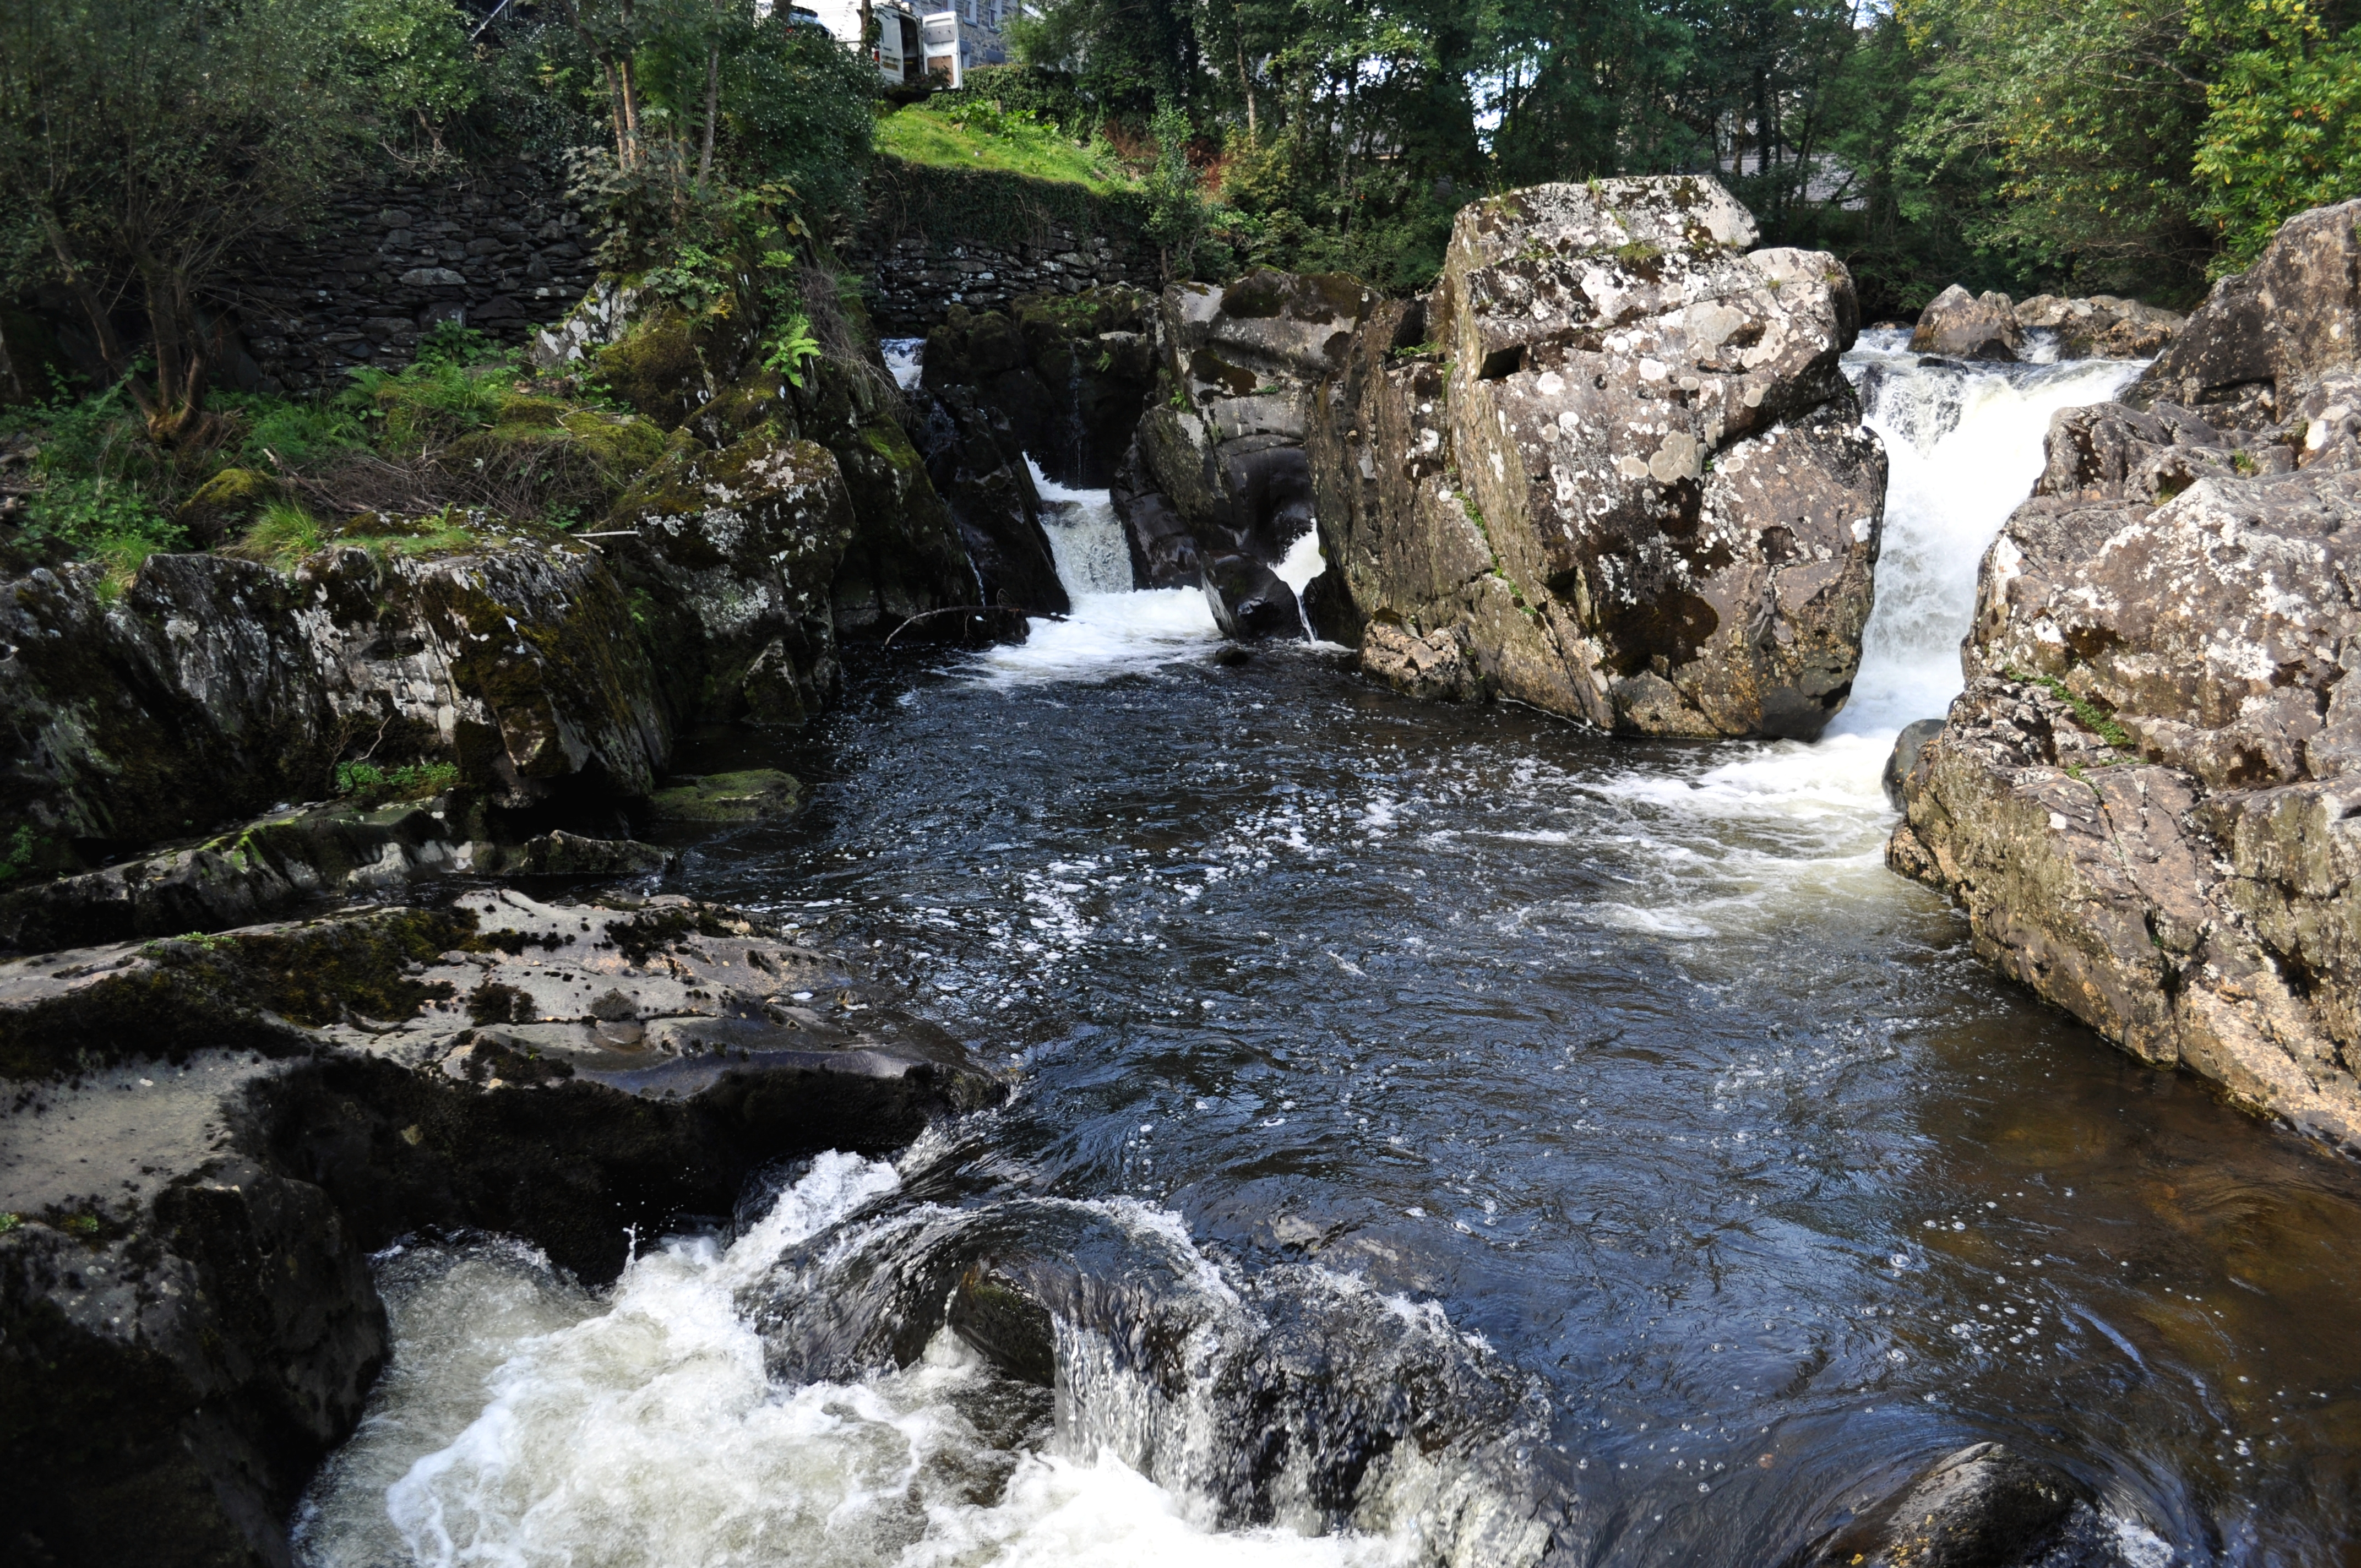 100% free online dating in betws y coed 3 miles from the village of betws-y-coed on the edge of snowdonia overlooking the rapids and rhydlanfair bridge dating back to free parking on.